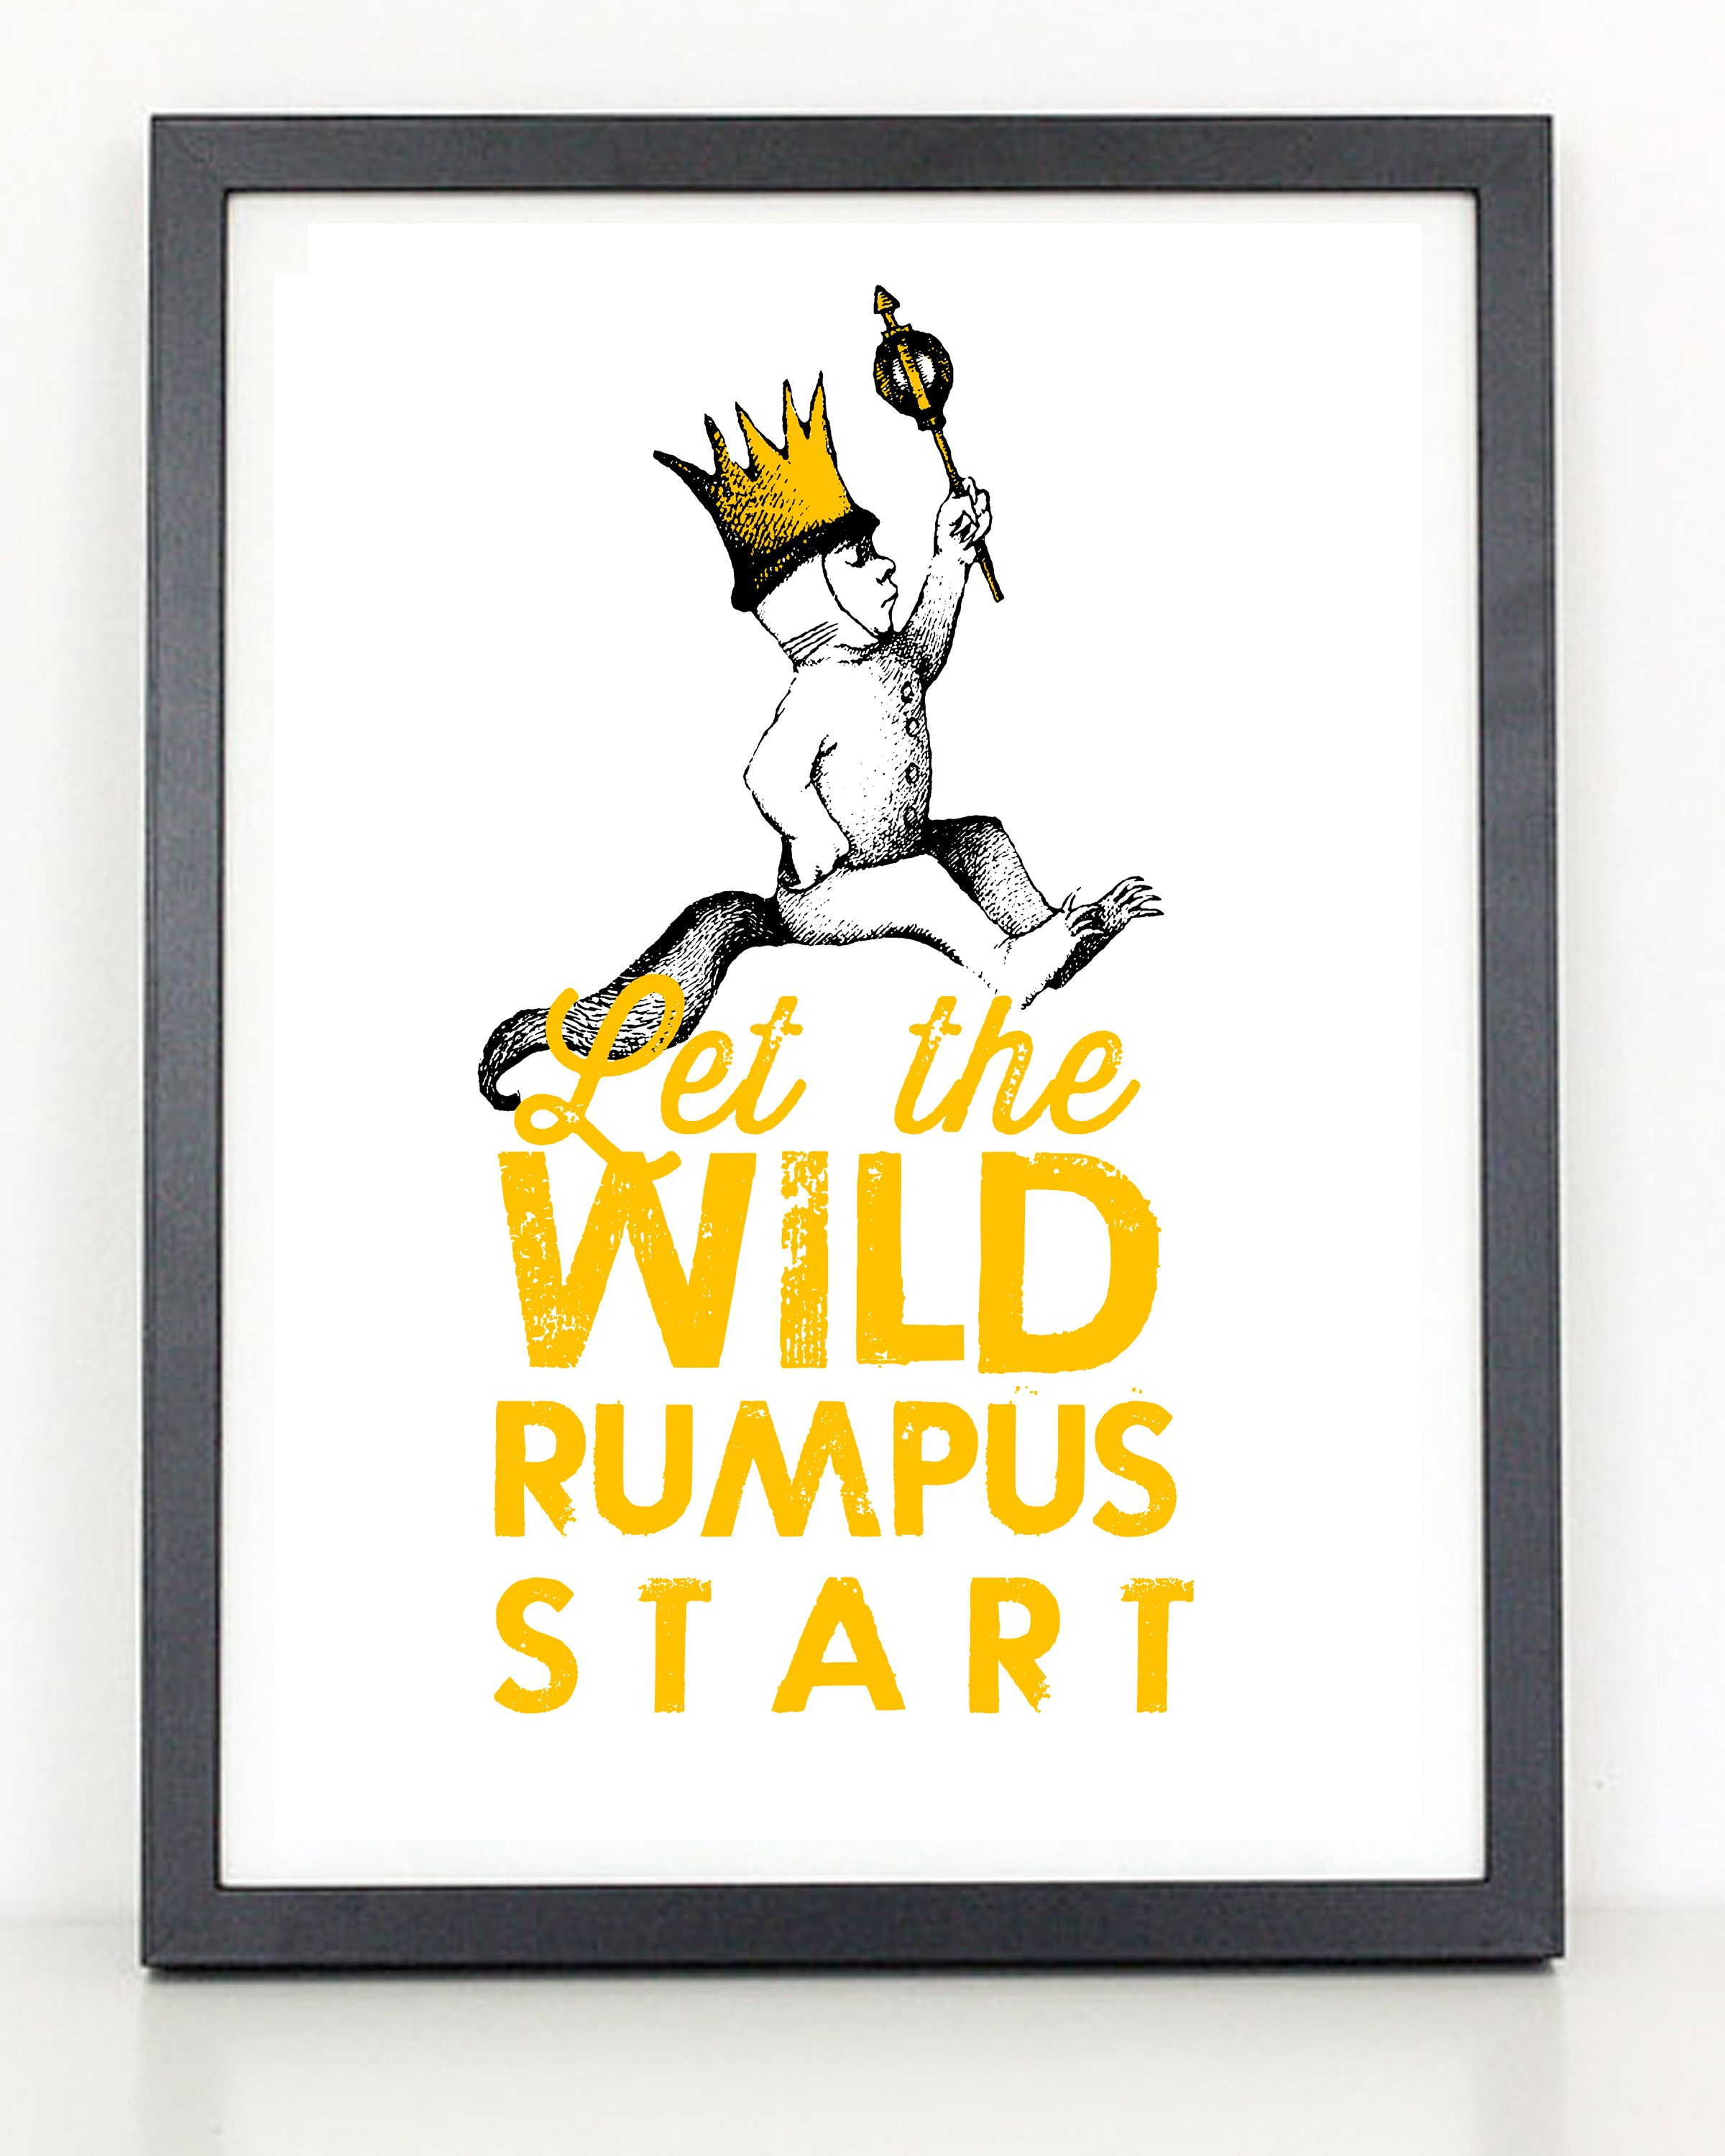 graphic about Let the Wild Rumpus Start Printable titled Enable the Wild Rumpus Start out - In which the Wild Elements are against